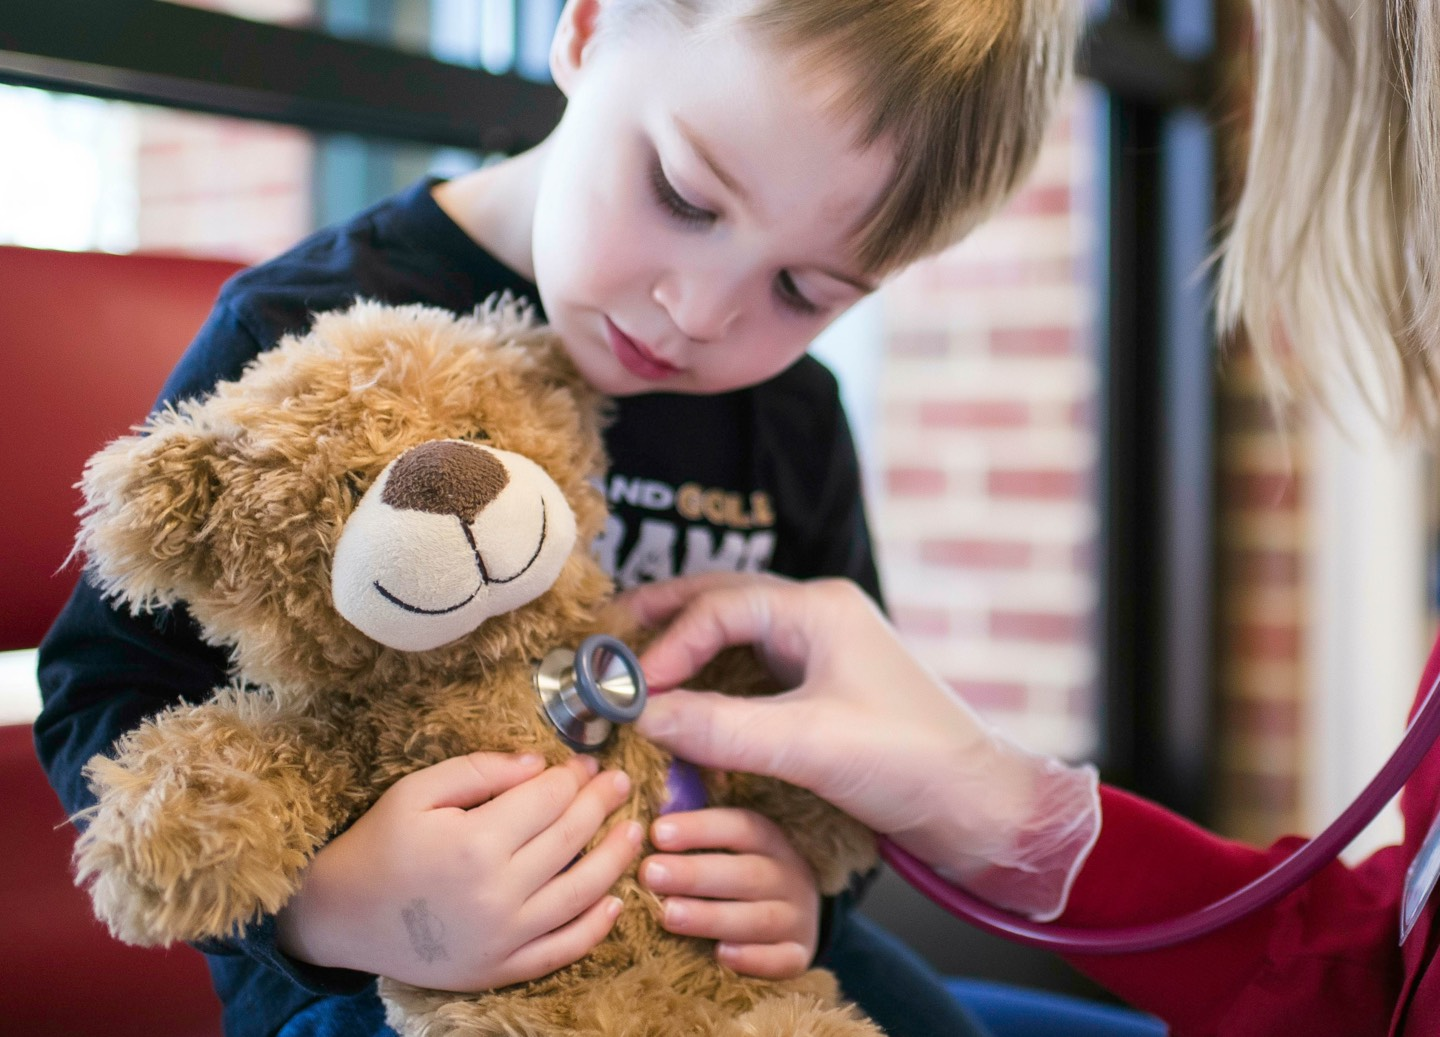 Student with teddy bear visits nurse for a checkup